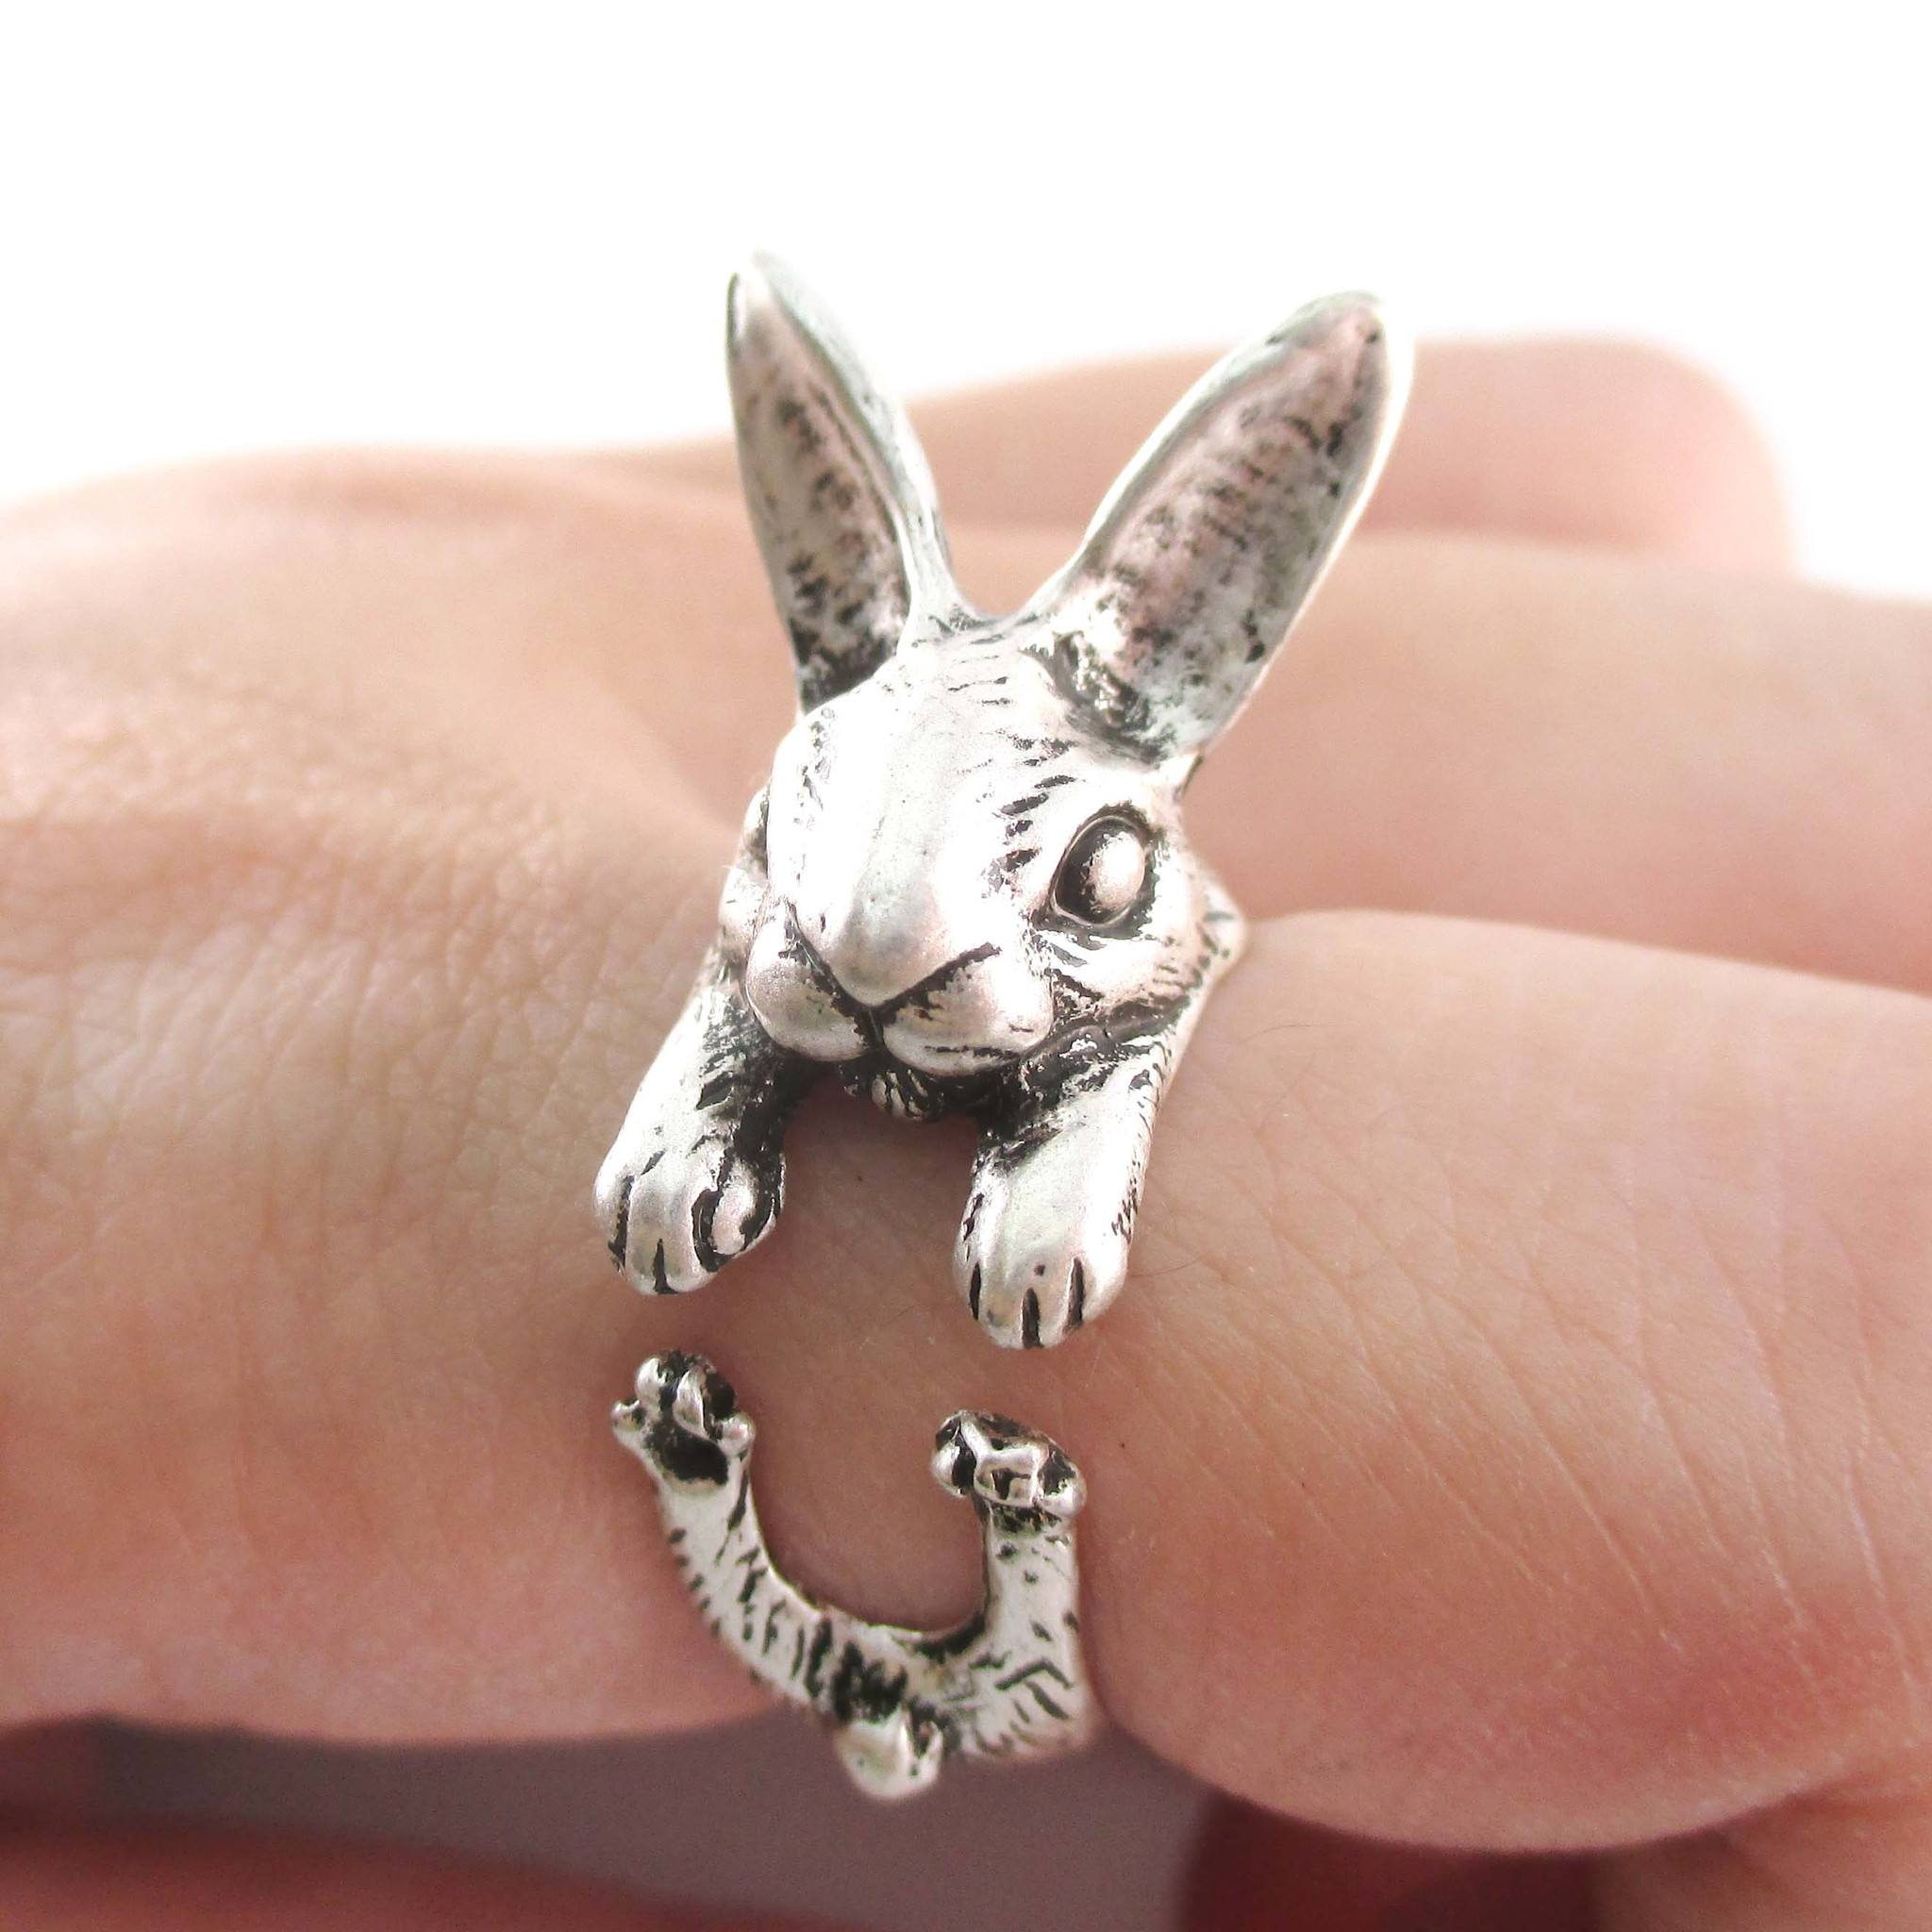 3D Bunny Rabbit Hare Shaped Animal Wrap Ring in Silver